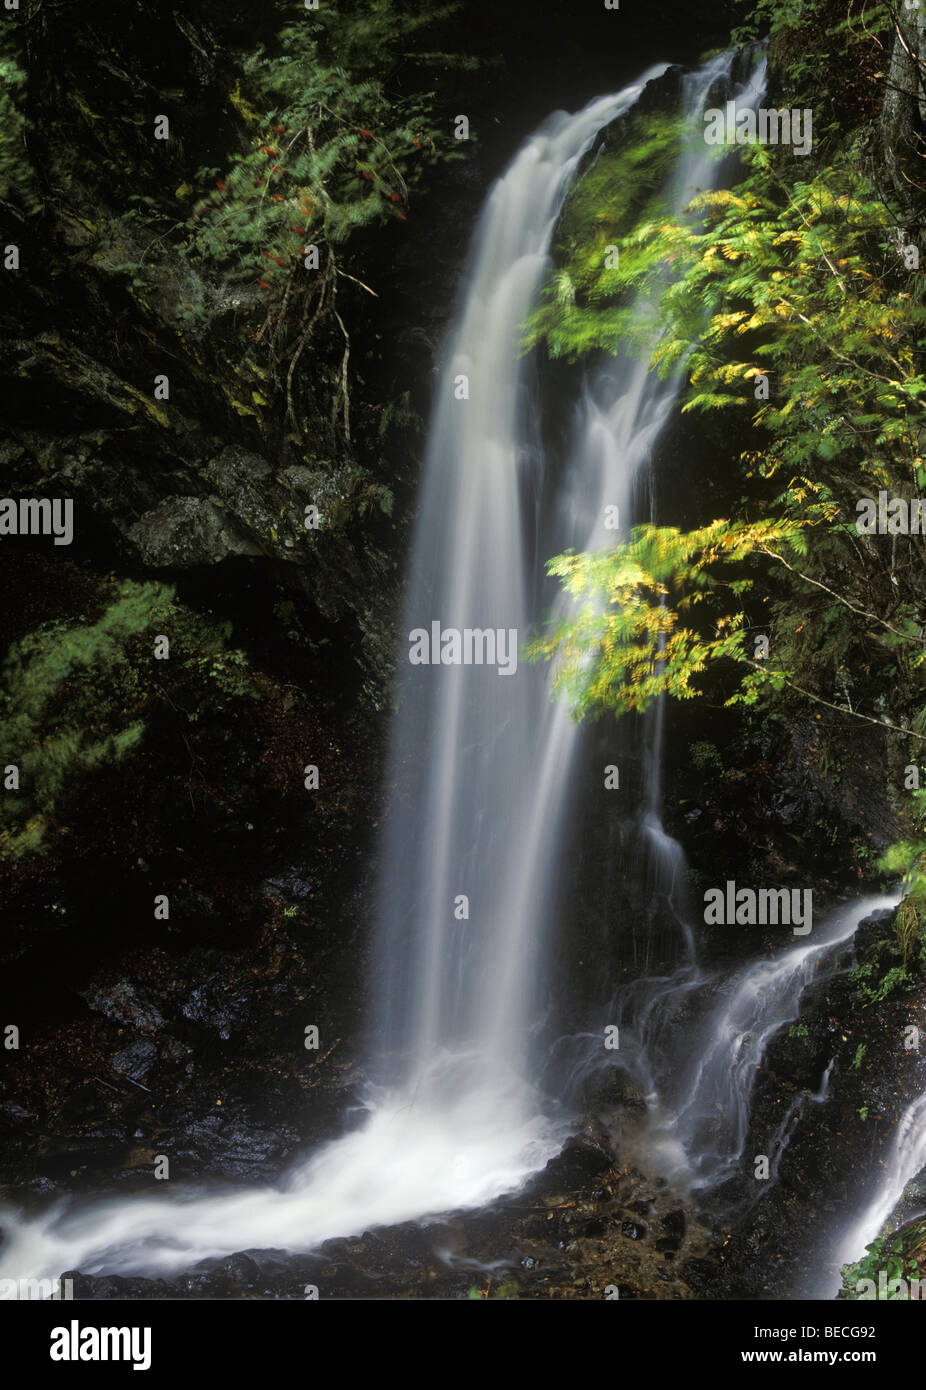 fahler wasserfall herbst schwarzwald baden w rttemberg deutschland europa stockfoto bild. Black Bedroom Furniture Sets. Home Design Ideas